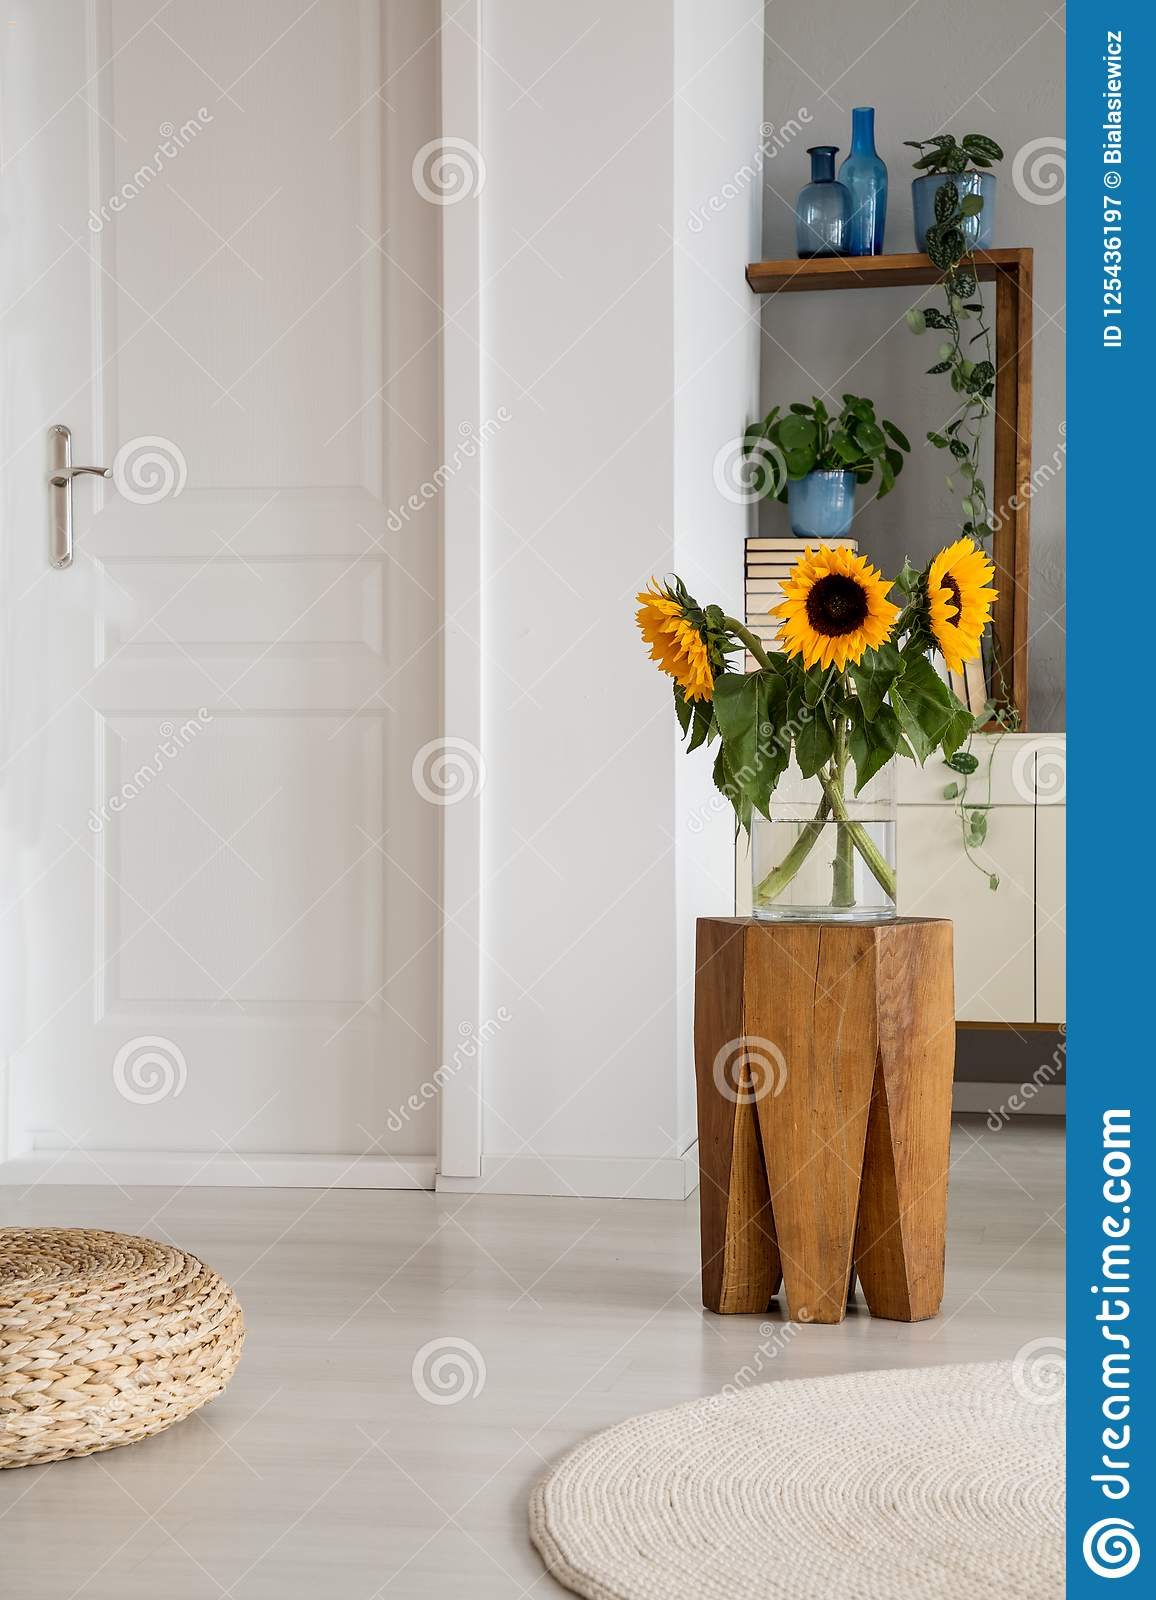 Sunflowers on wooden stool next to pouf in white living room interior with door and rug. Real photo